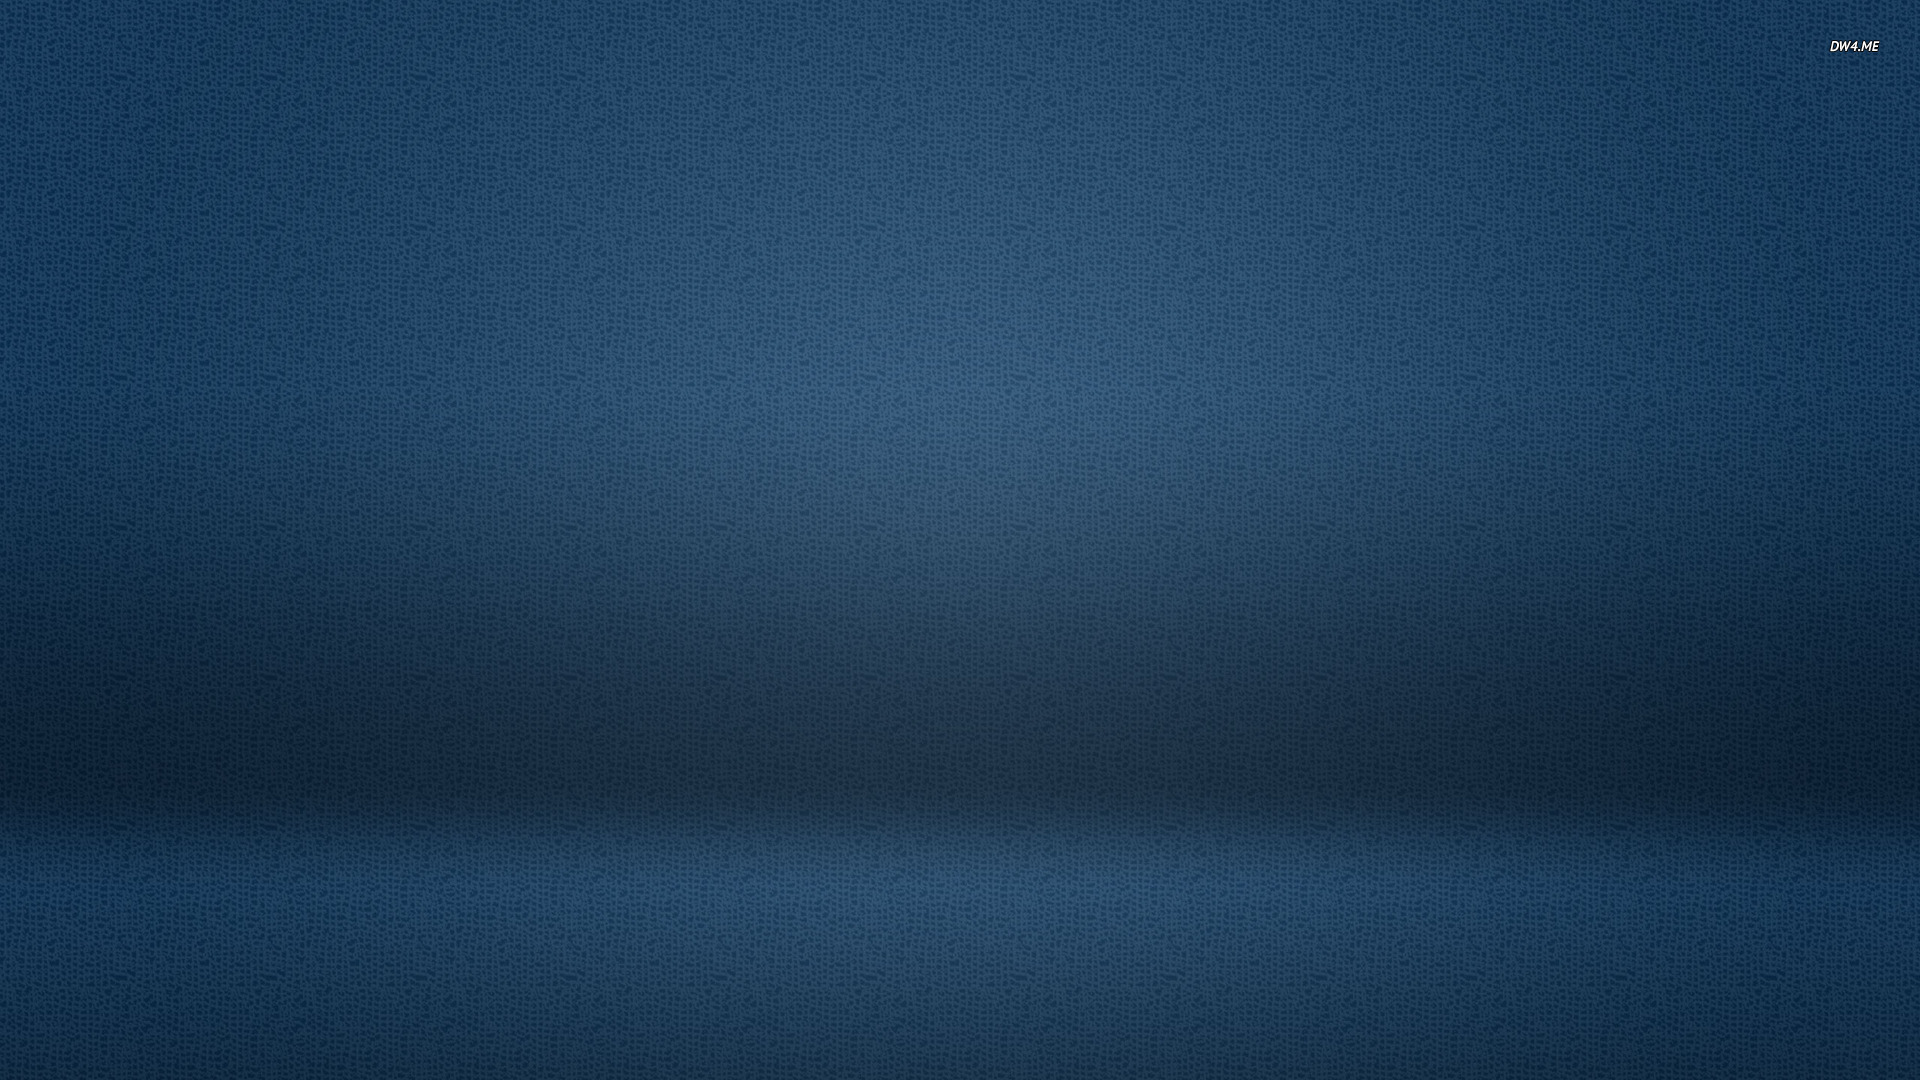 Android blue pattern wallpaper   585705 1920x1080